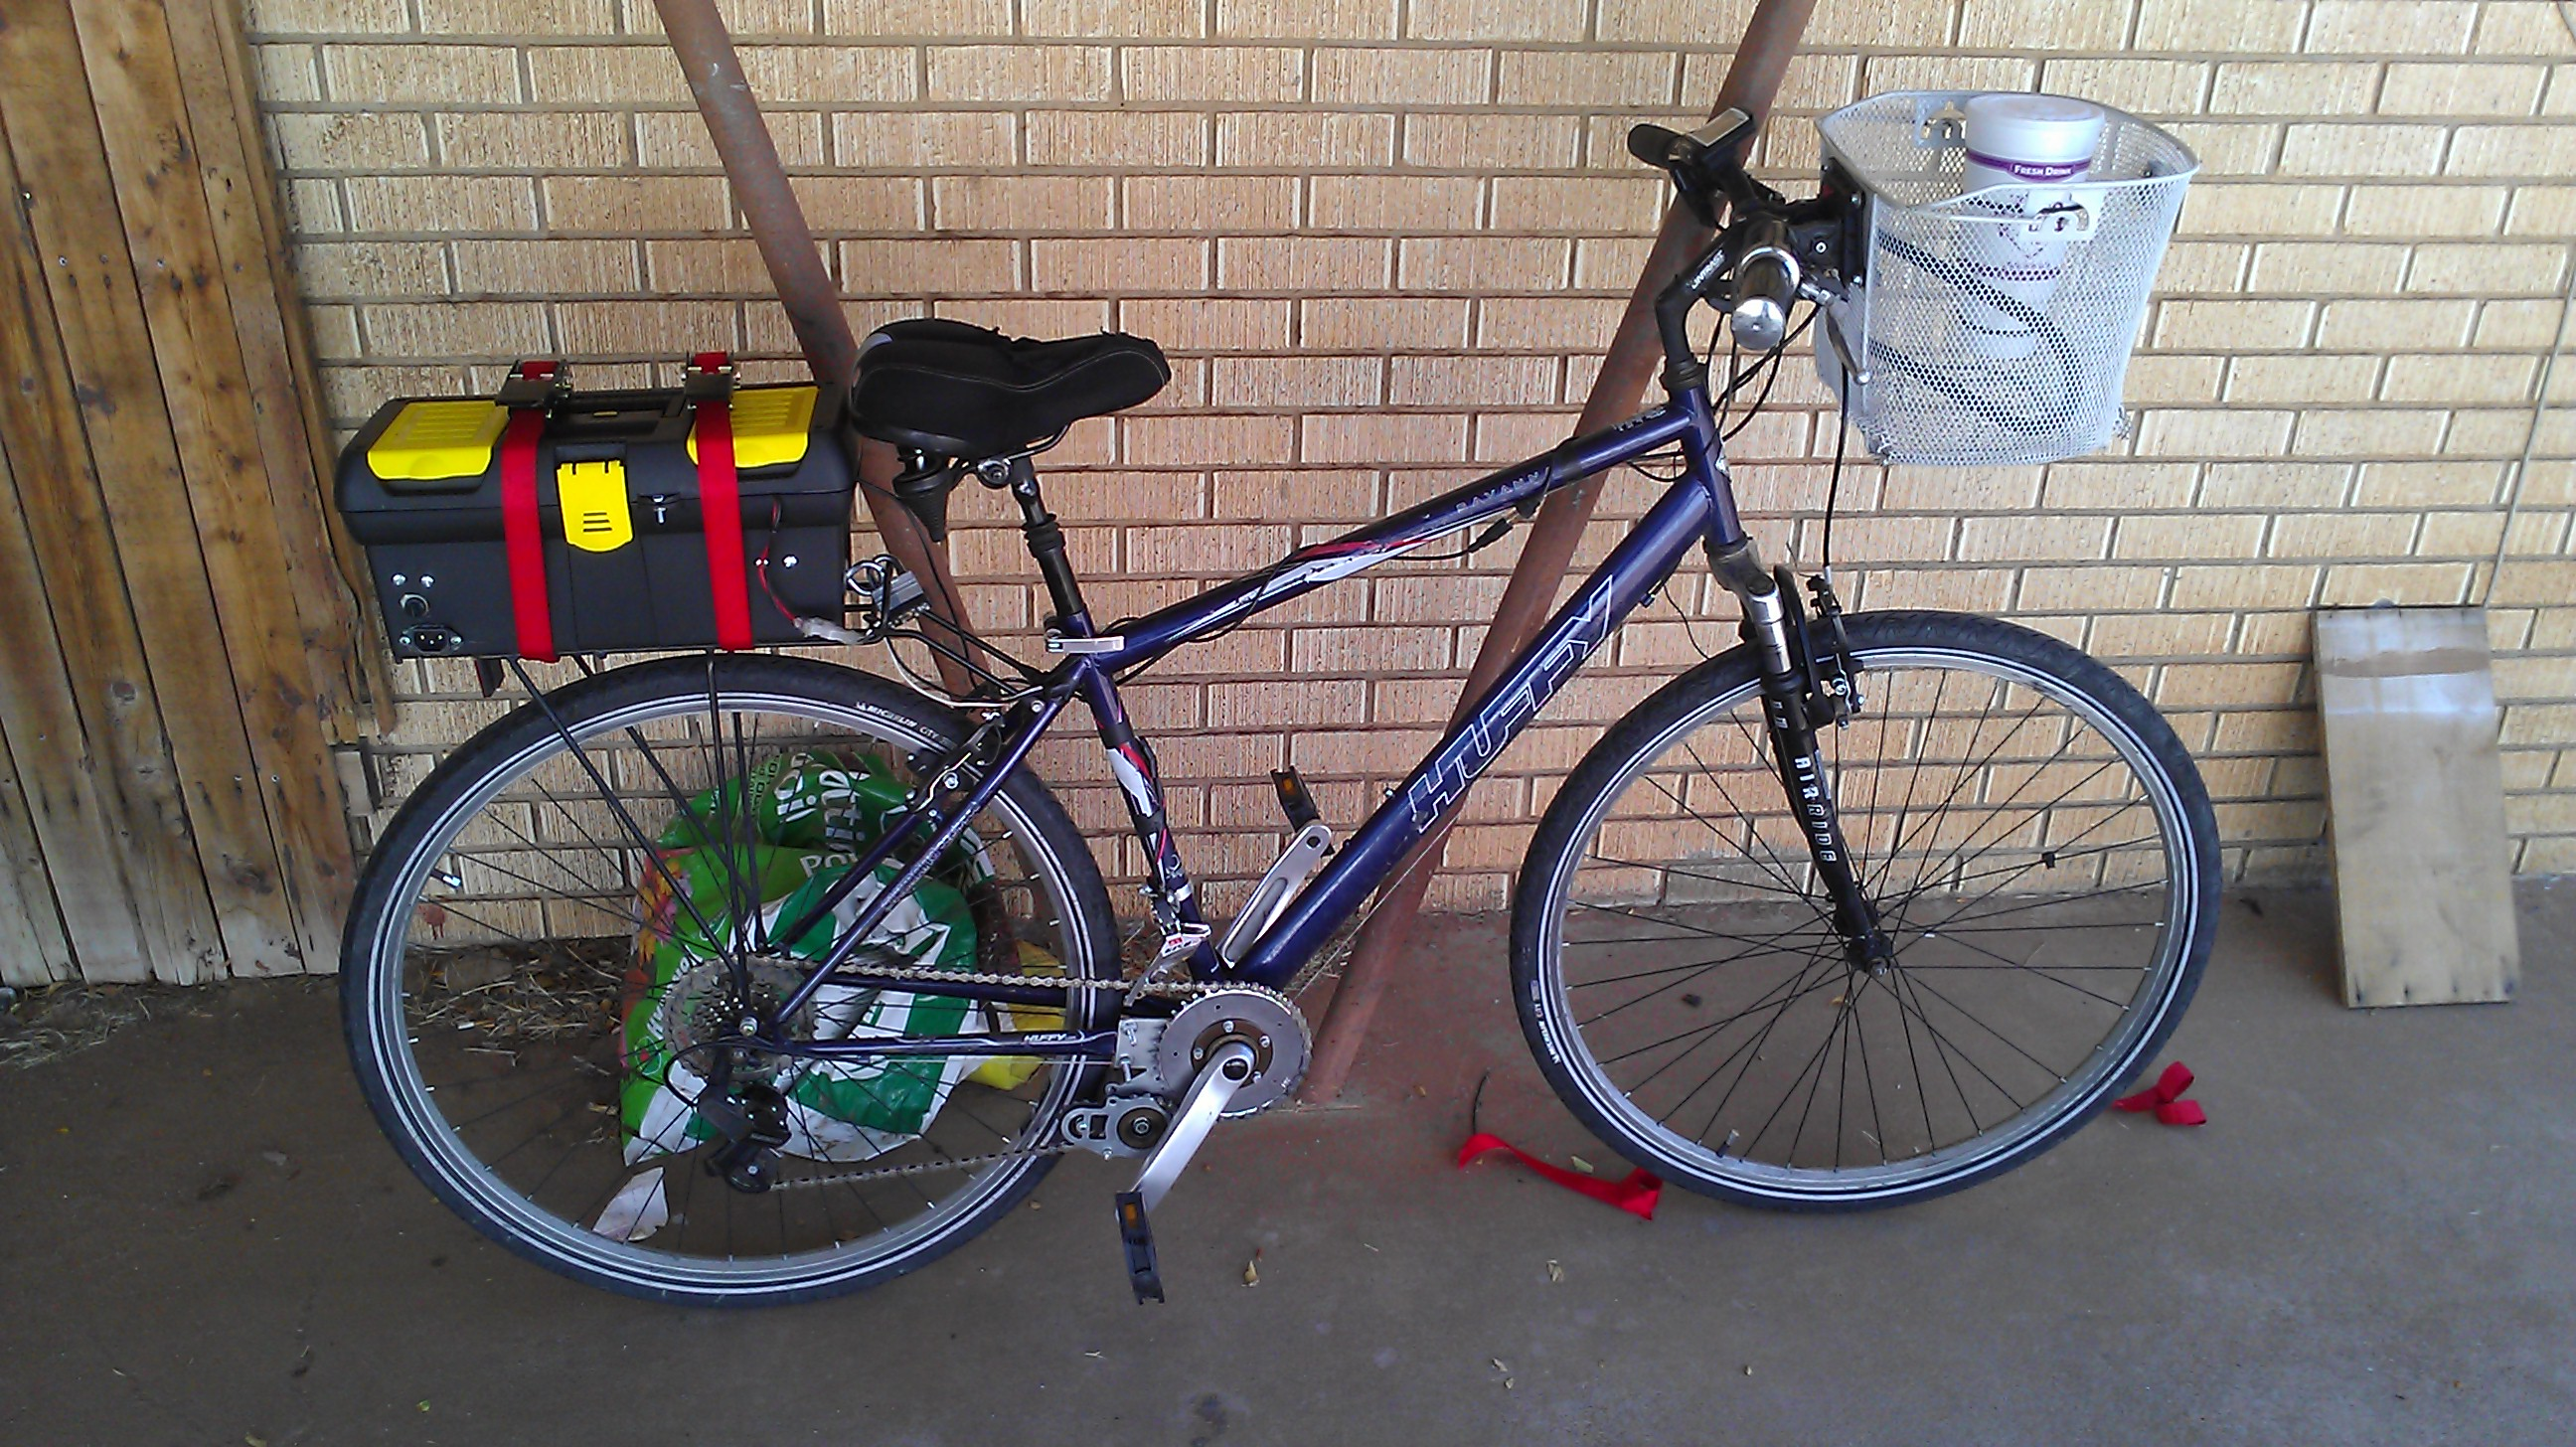 Bike with new battery box.